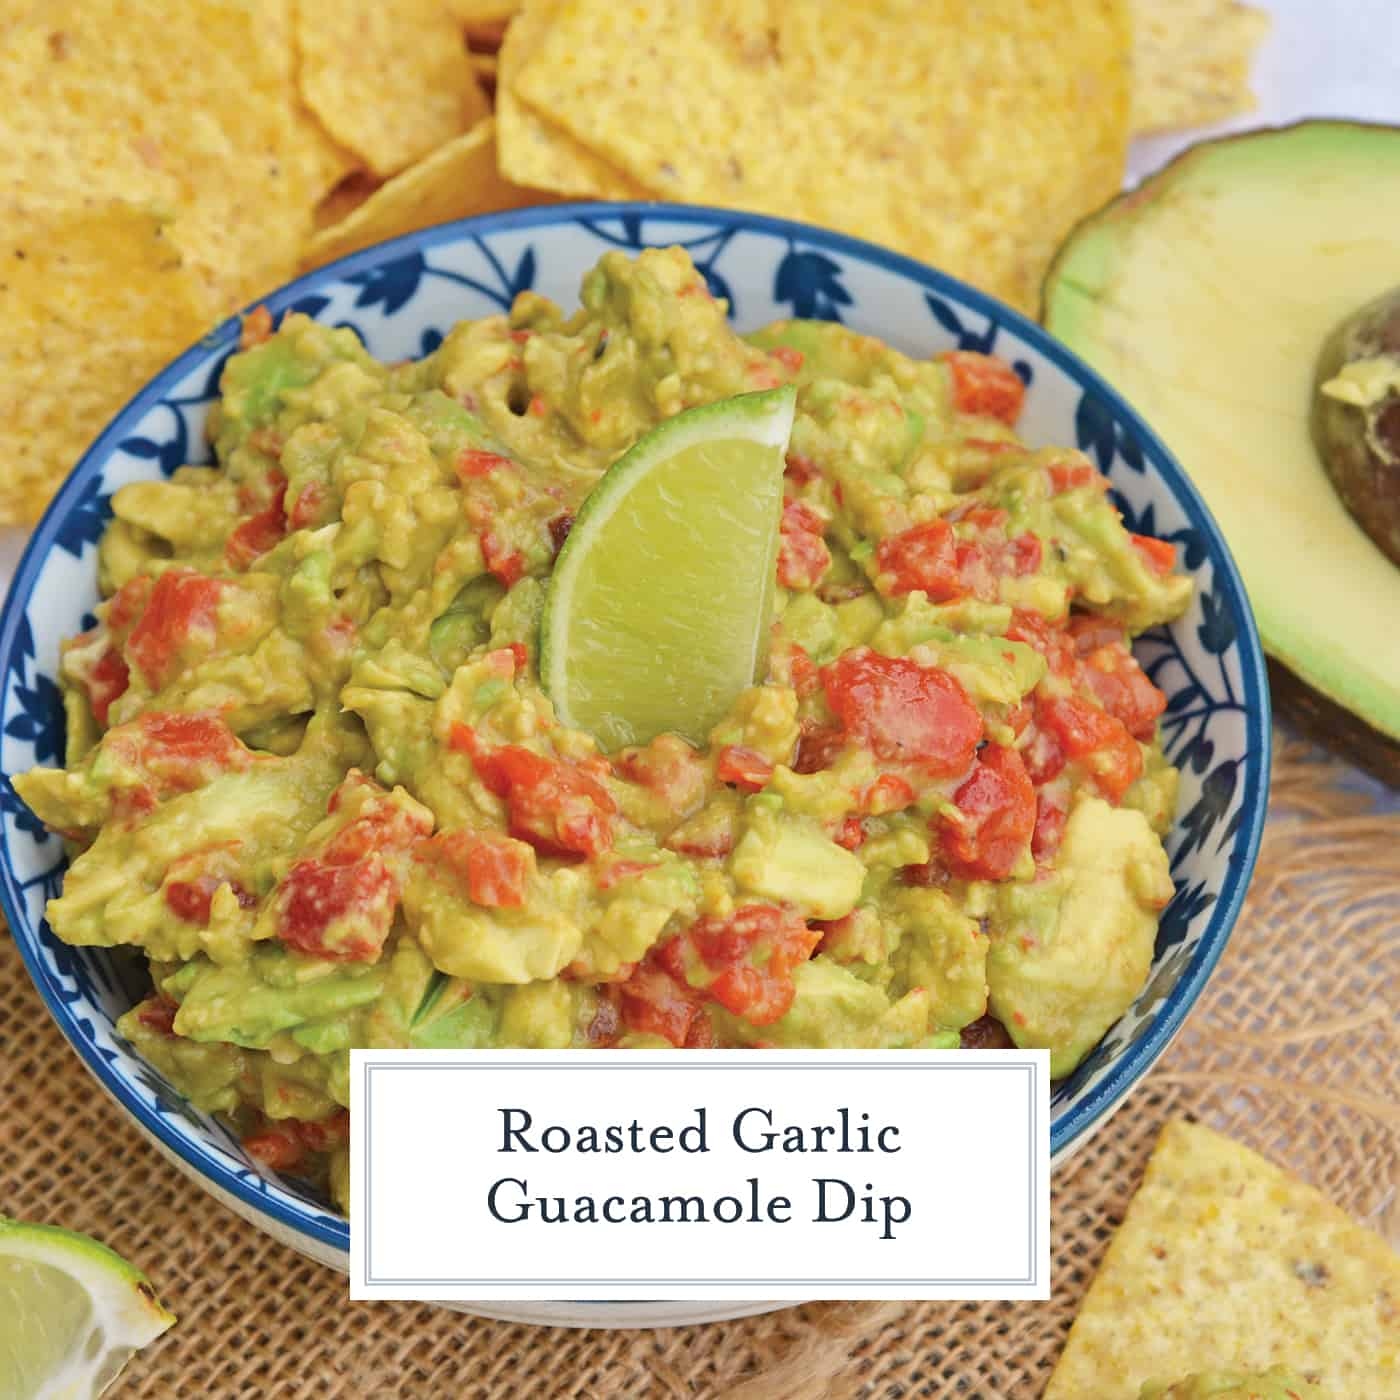 Roasted Garlic Guacamole Dip is a refreshing twist on your typical avocado favorite! Roasted garlic and red bell pepper gives this an edge over the others! #guacamoledip #guacamolerecipes #easyguacamole www.savoryexperiments.com